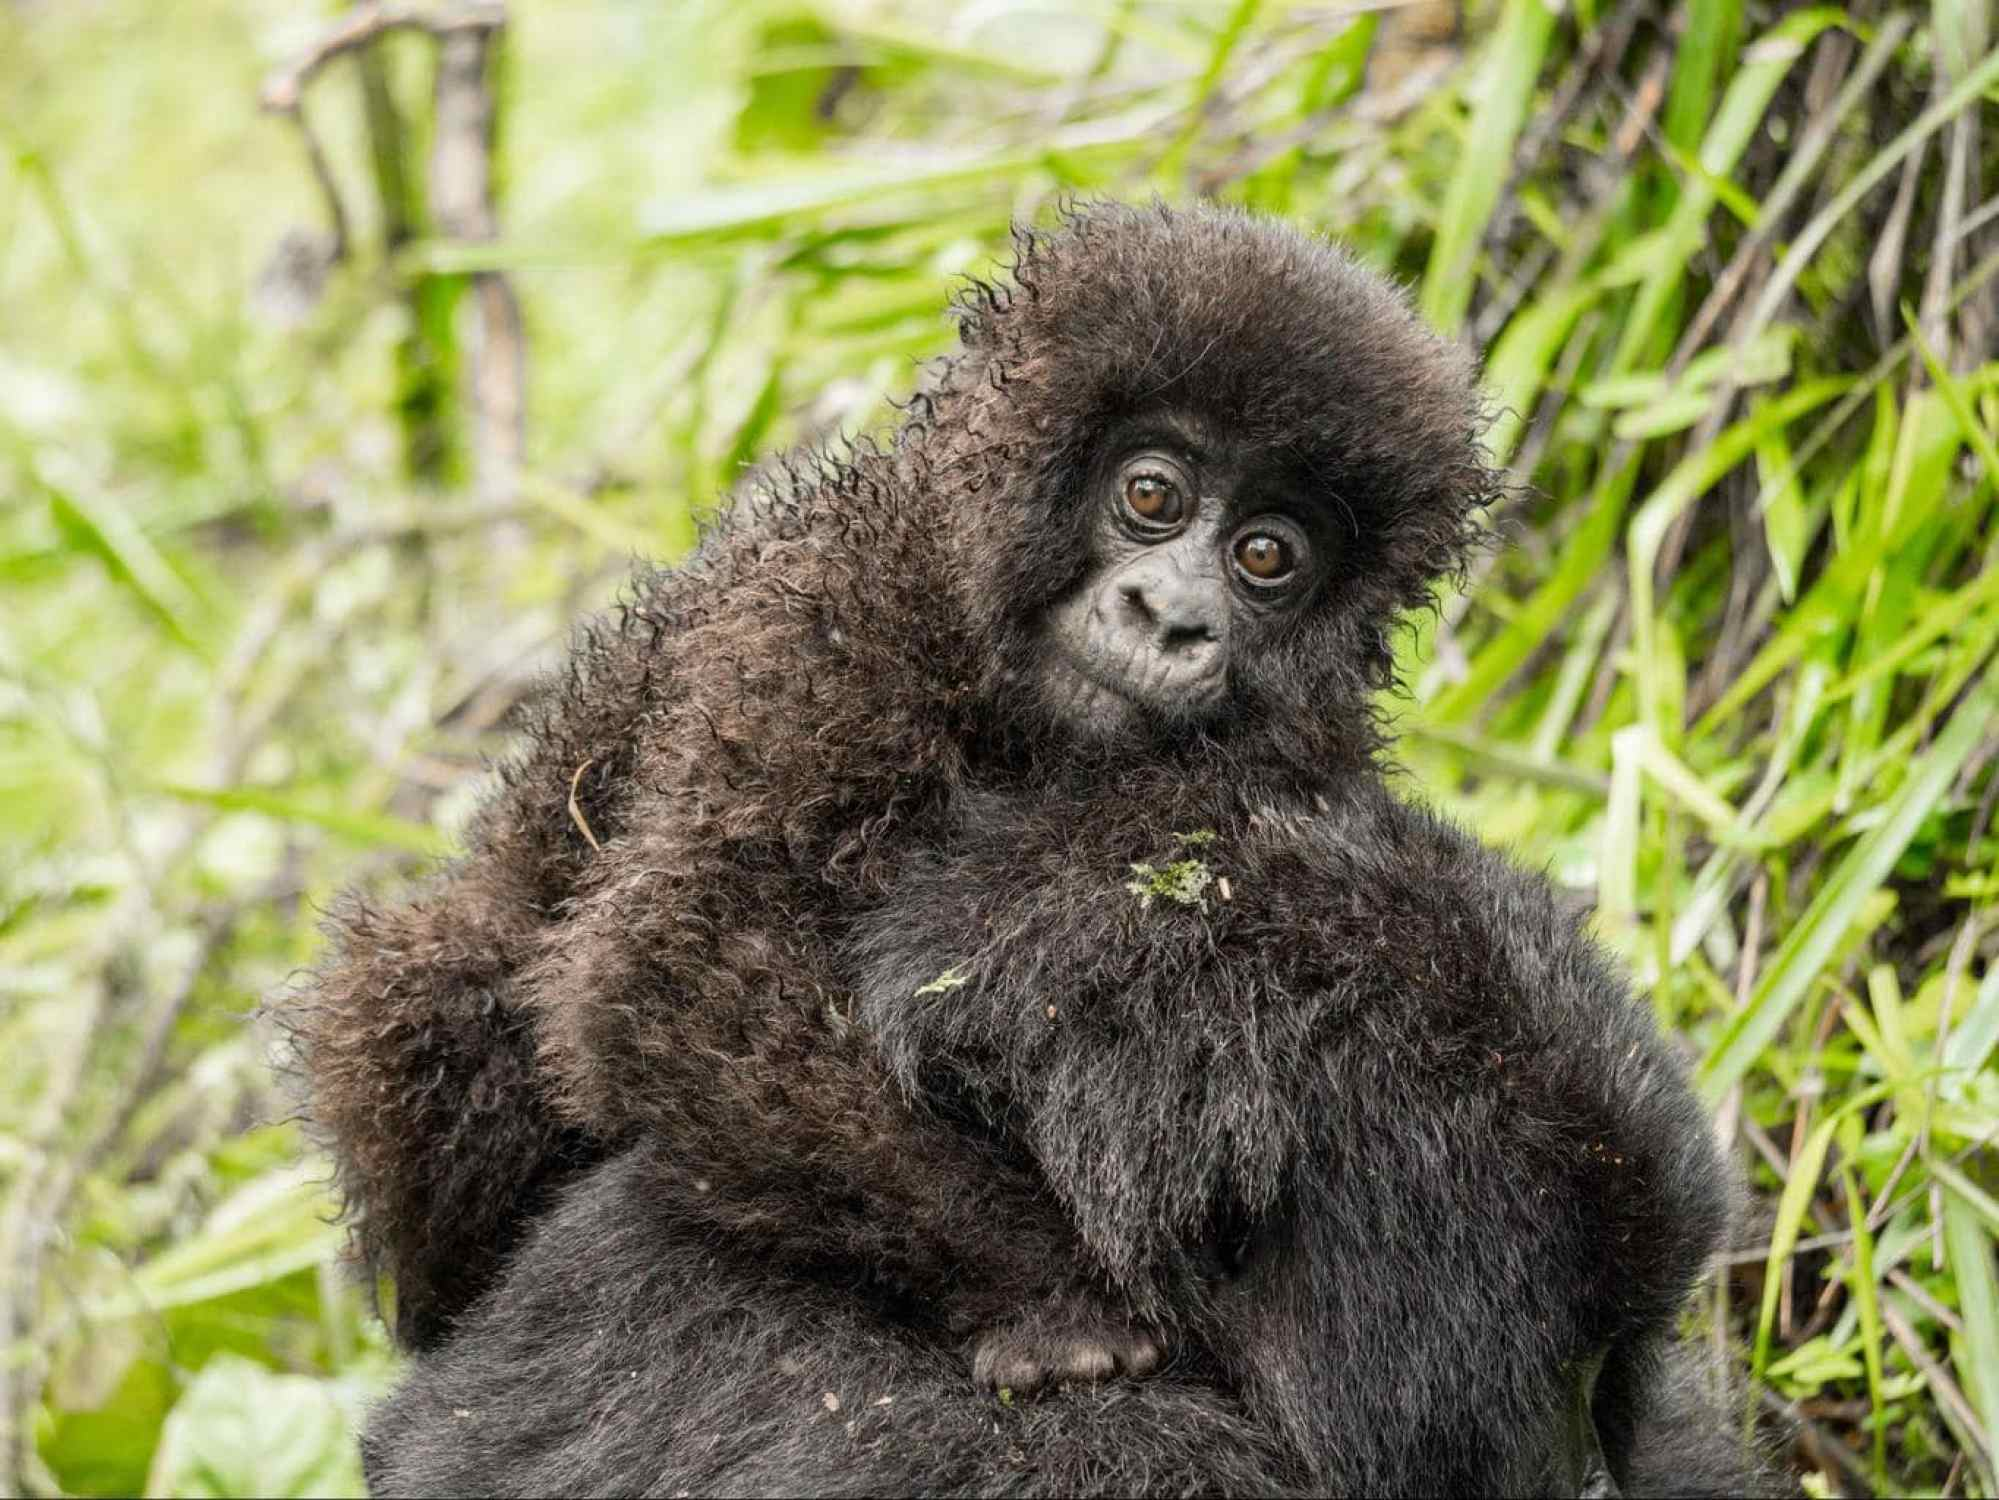 Who can resist this little baby gorilla?